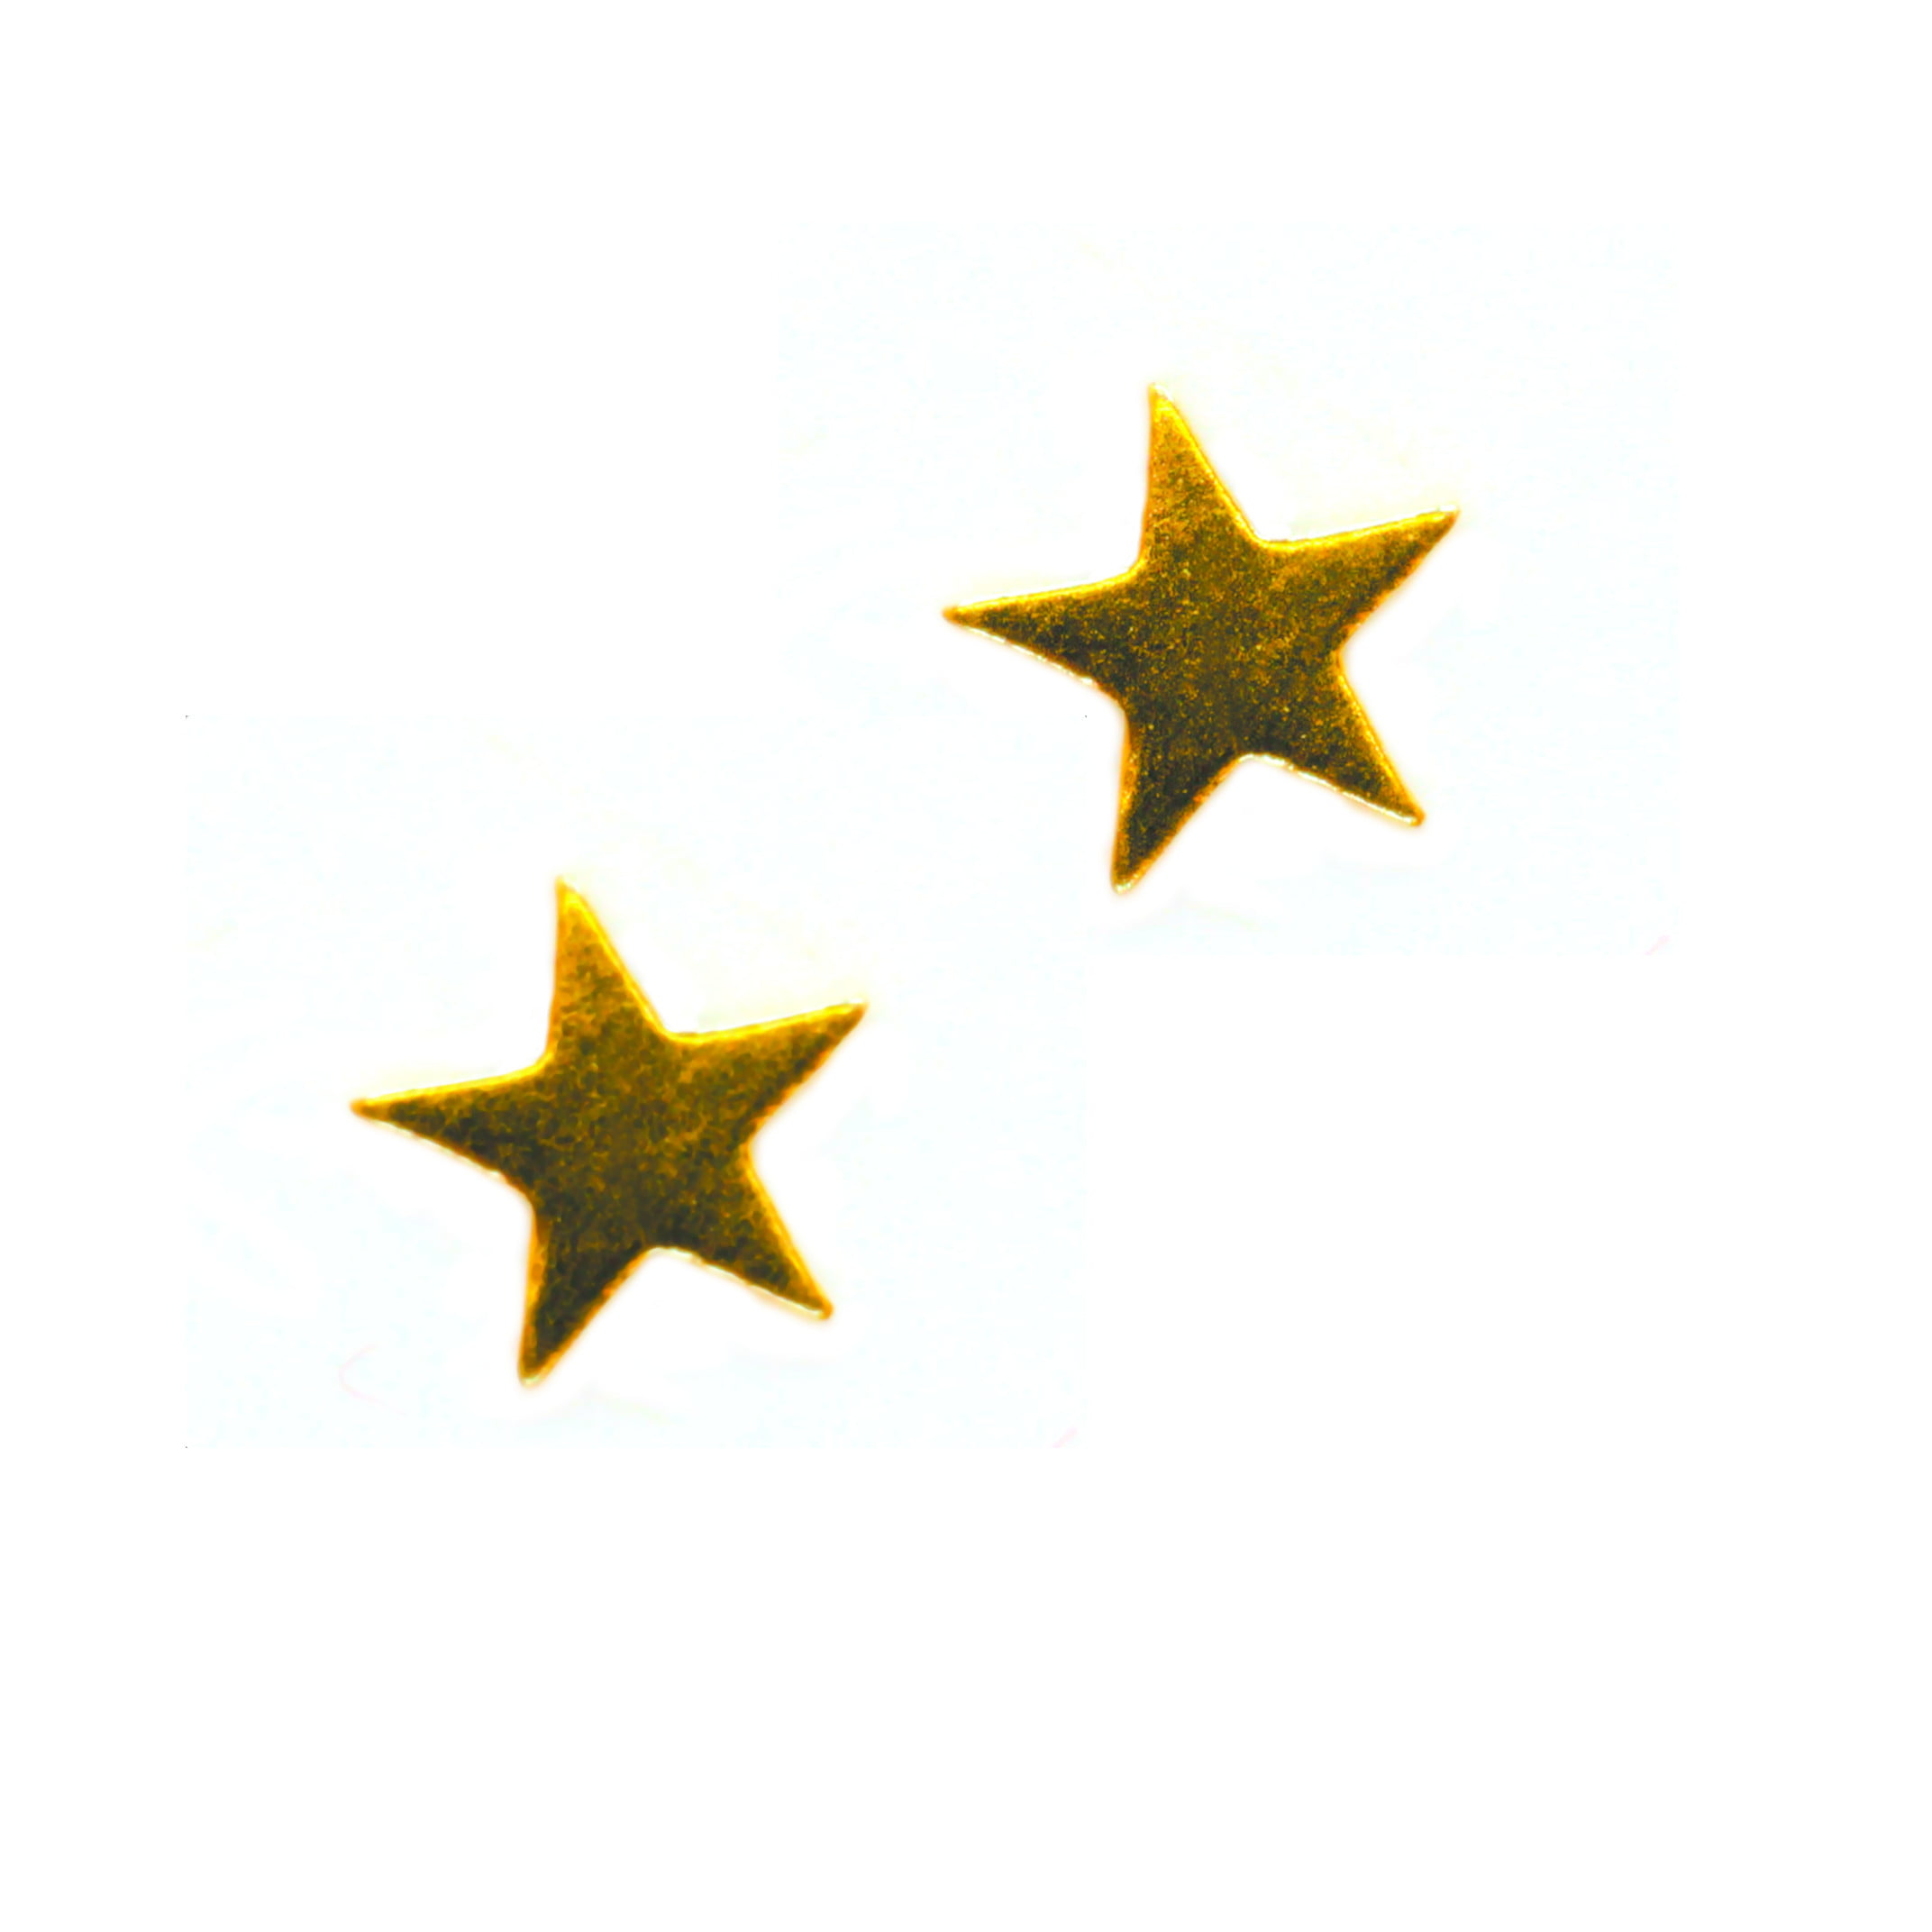 Small star earrings in 9ct yellow gold